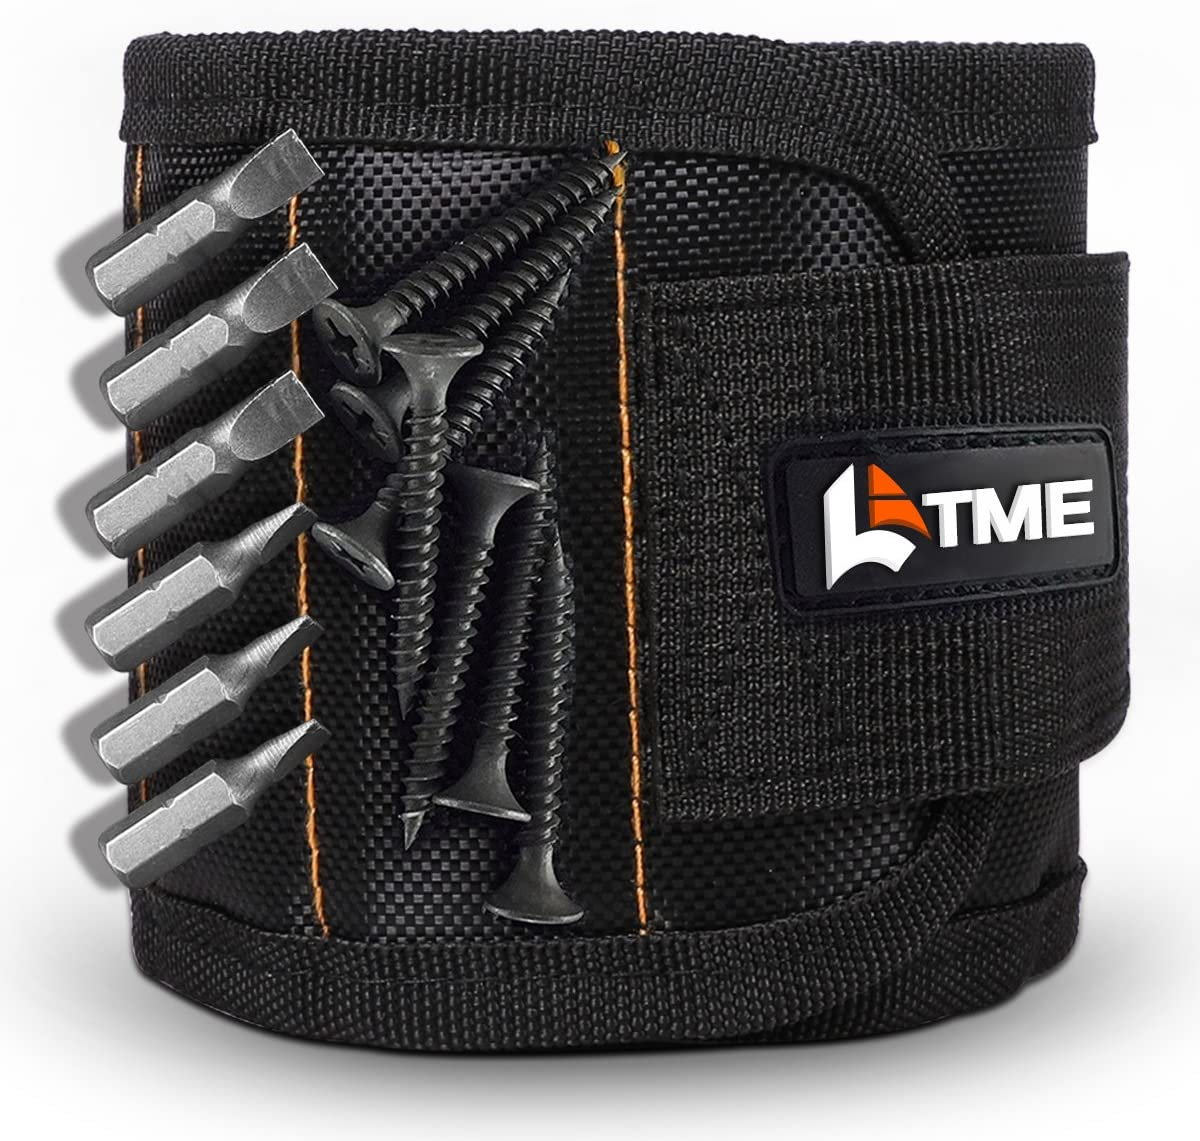 gifts-for-grandpa-magnetic-tool-wristband